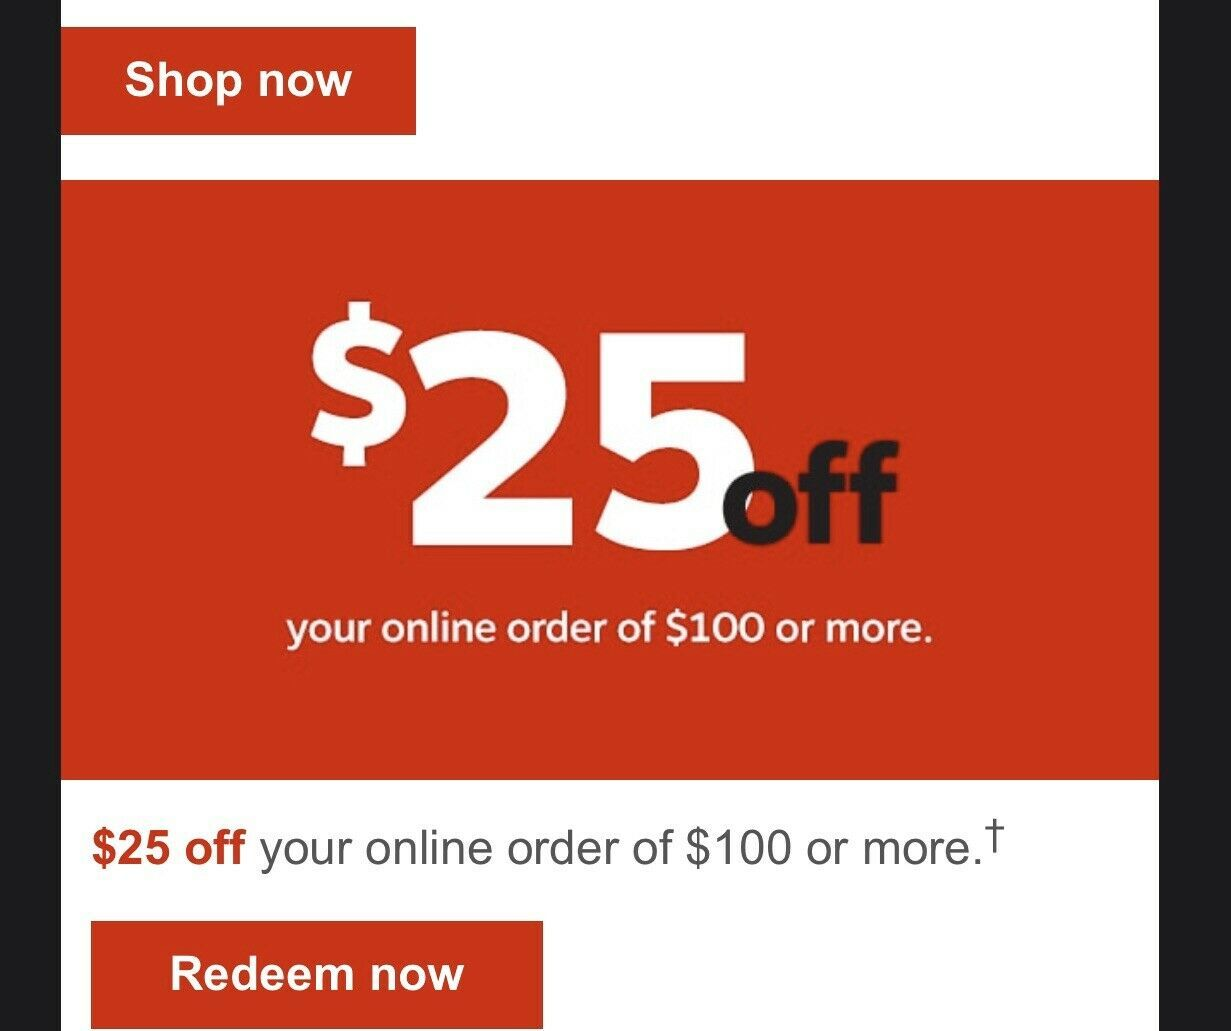 Staples 25 Off Your Online Order Of 100 Or More Exp 01 17 2020 25 Off 100 Staples Coupons In 2020 Order Online Online Staples